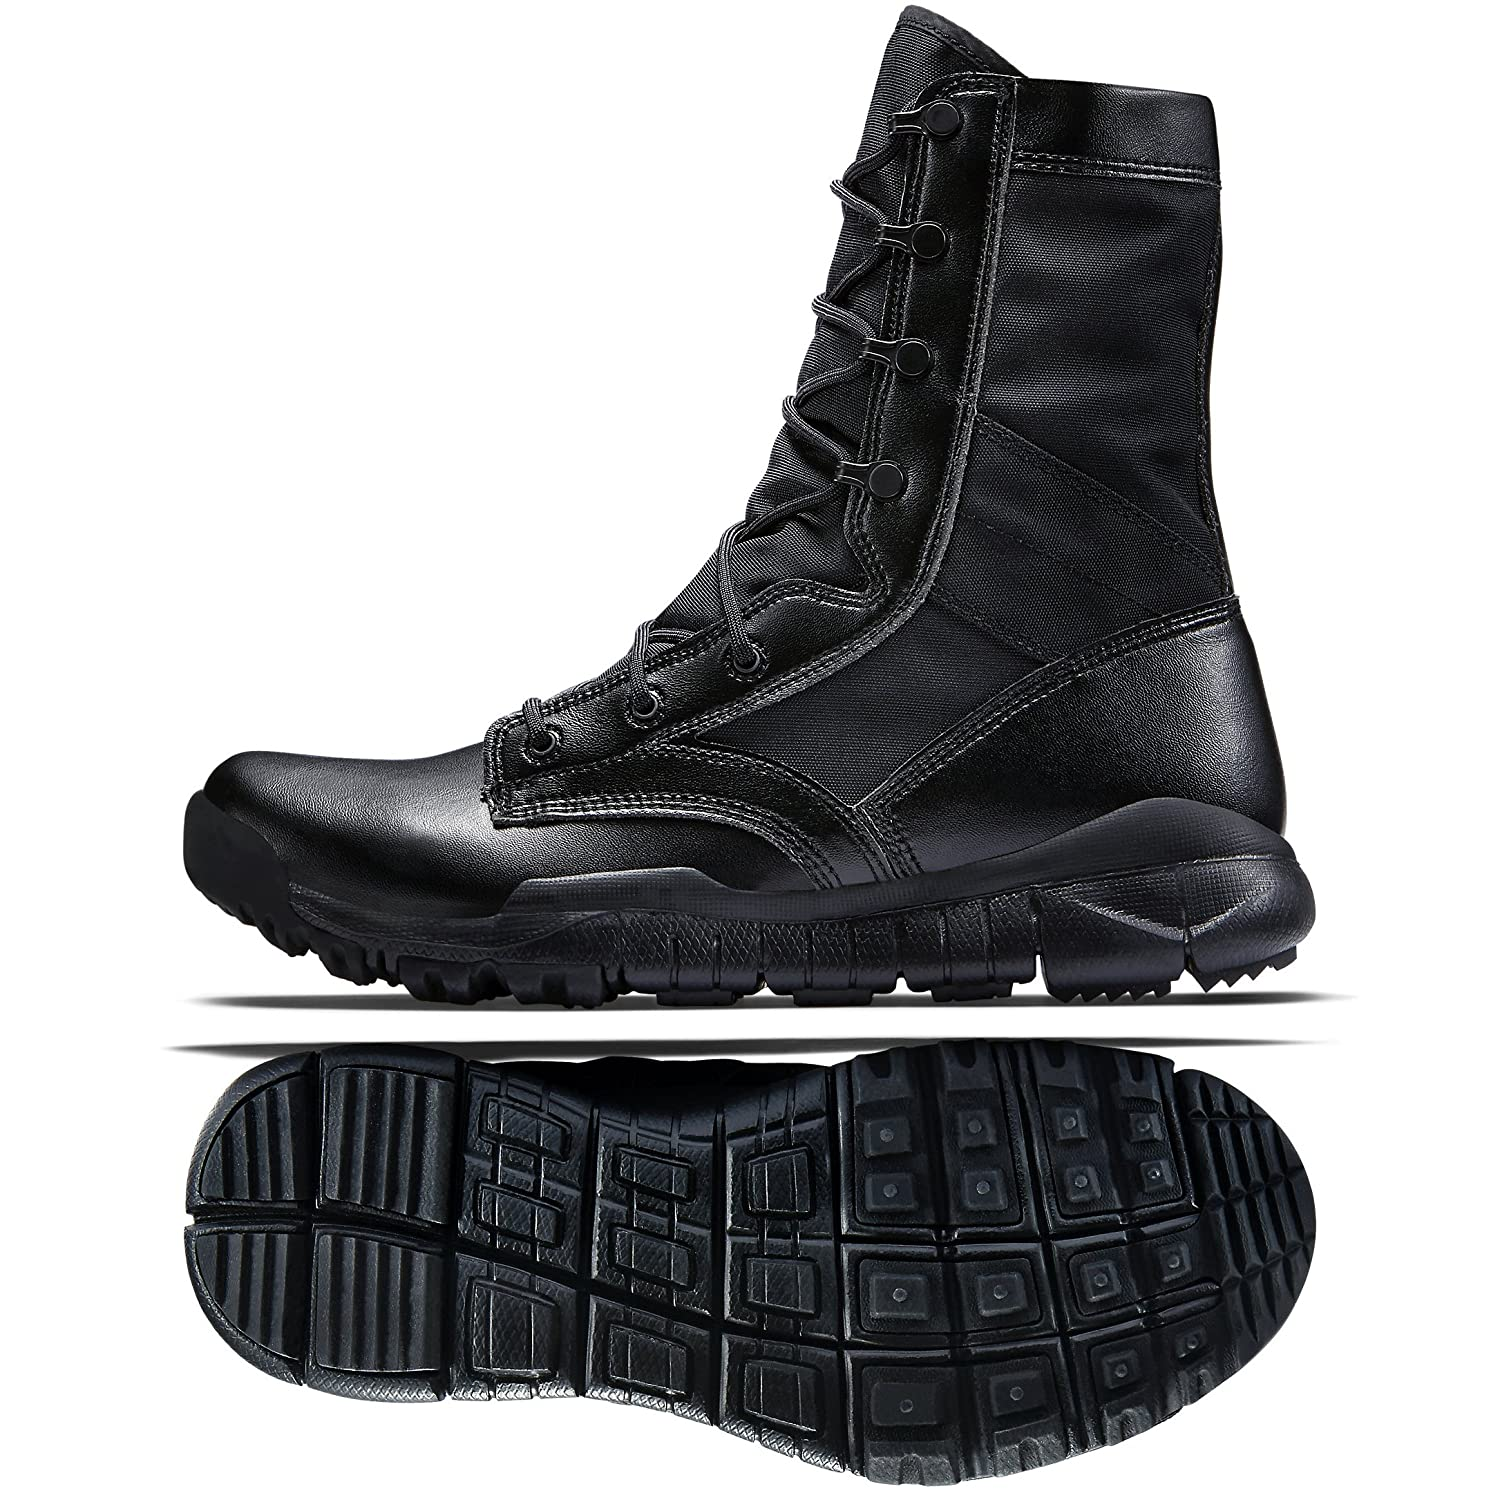 30d301b839a Amazon.com | Nike Men's SFB Special Field Boots Tactical Military ...